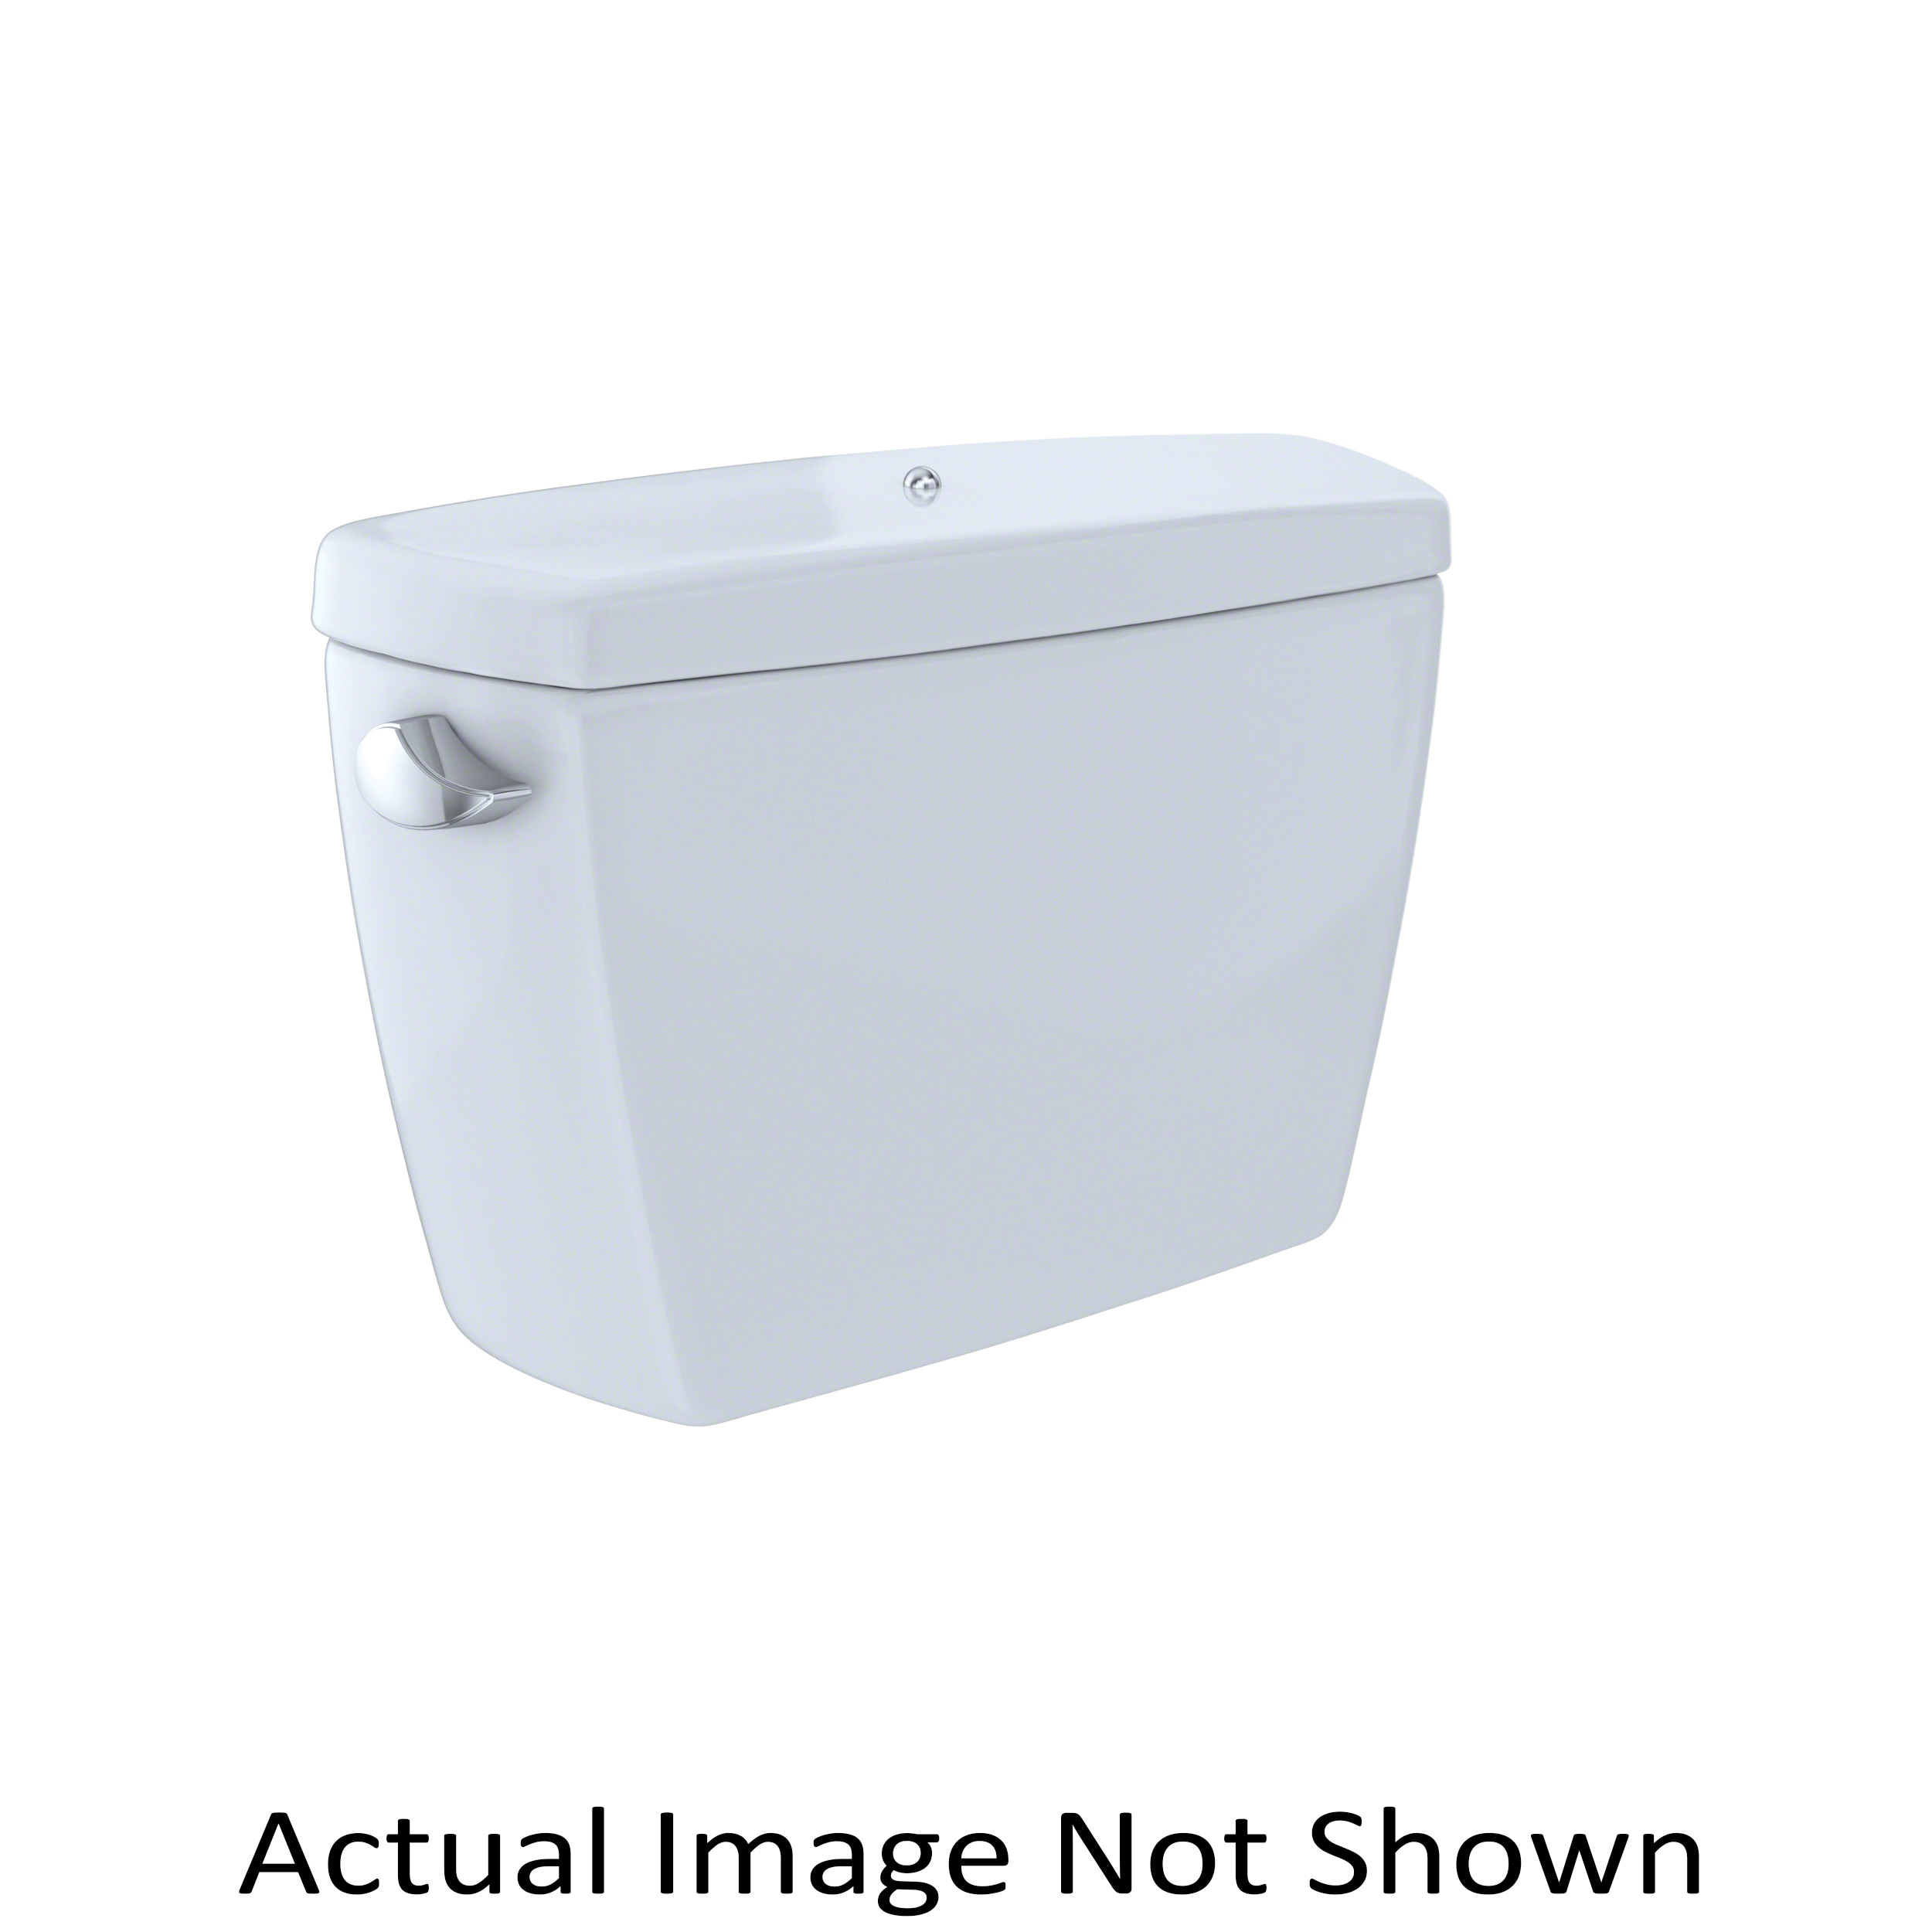 Toto® ST743SDB#11 Tank and Cover With Bolt Down Lid, 1.6 gpf, Left Hand Lever Flush Handle, 3 in Flush, Colonial White, Import